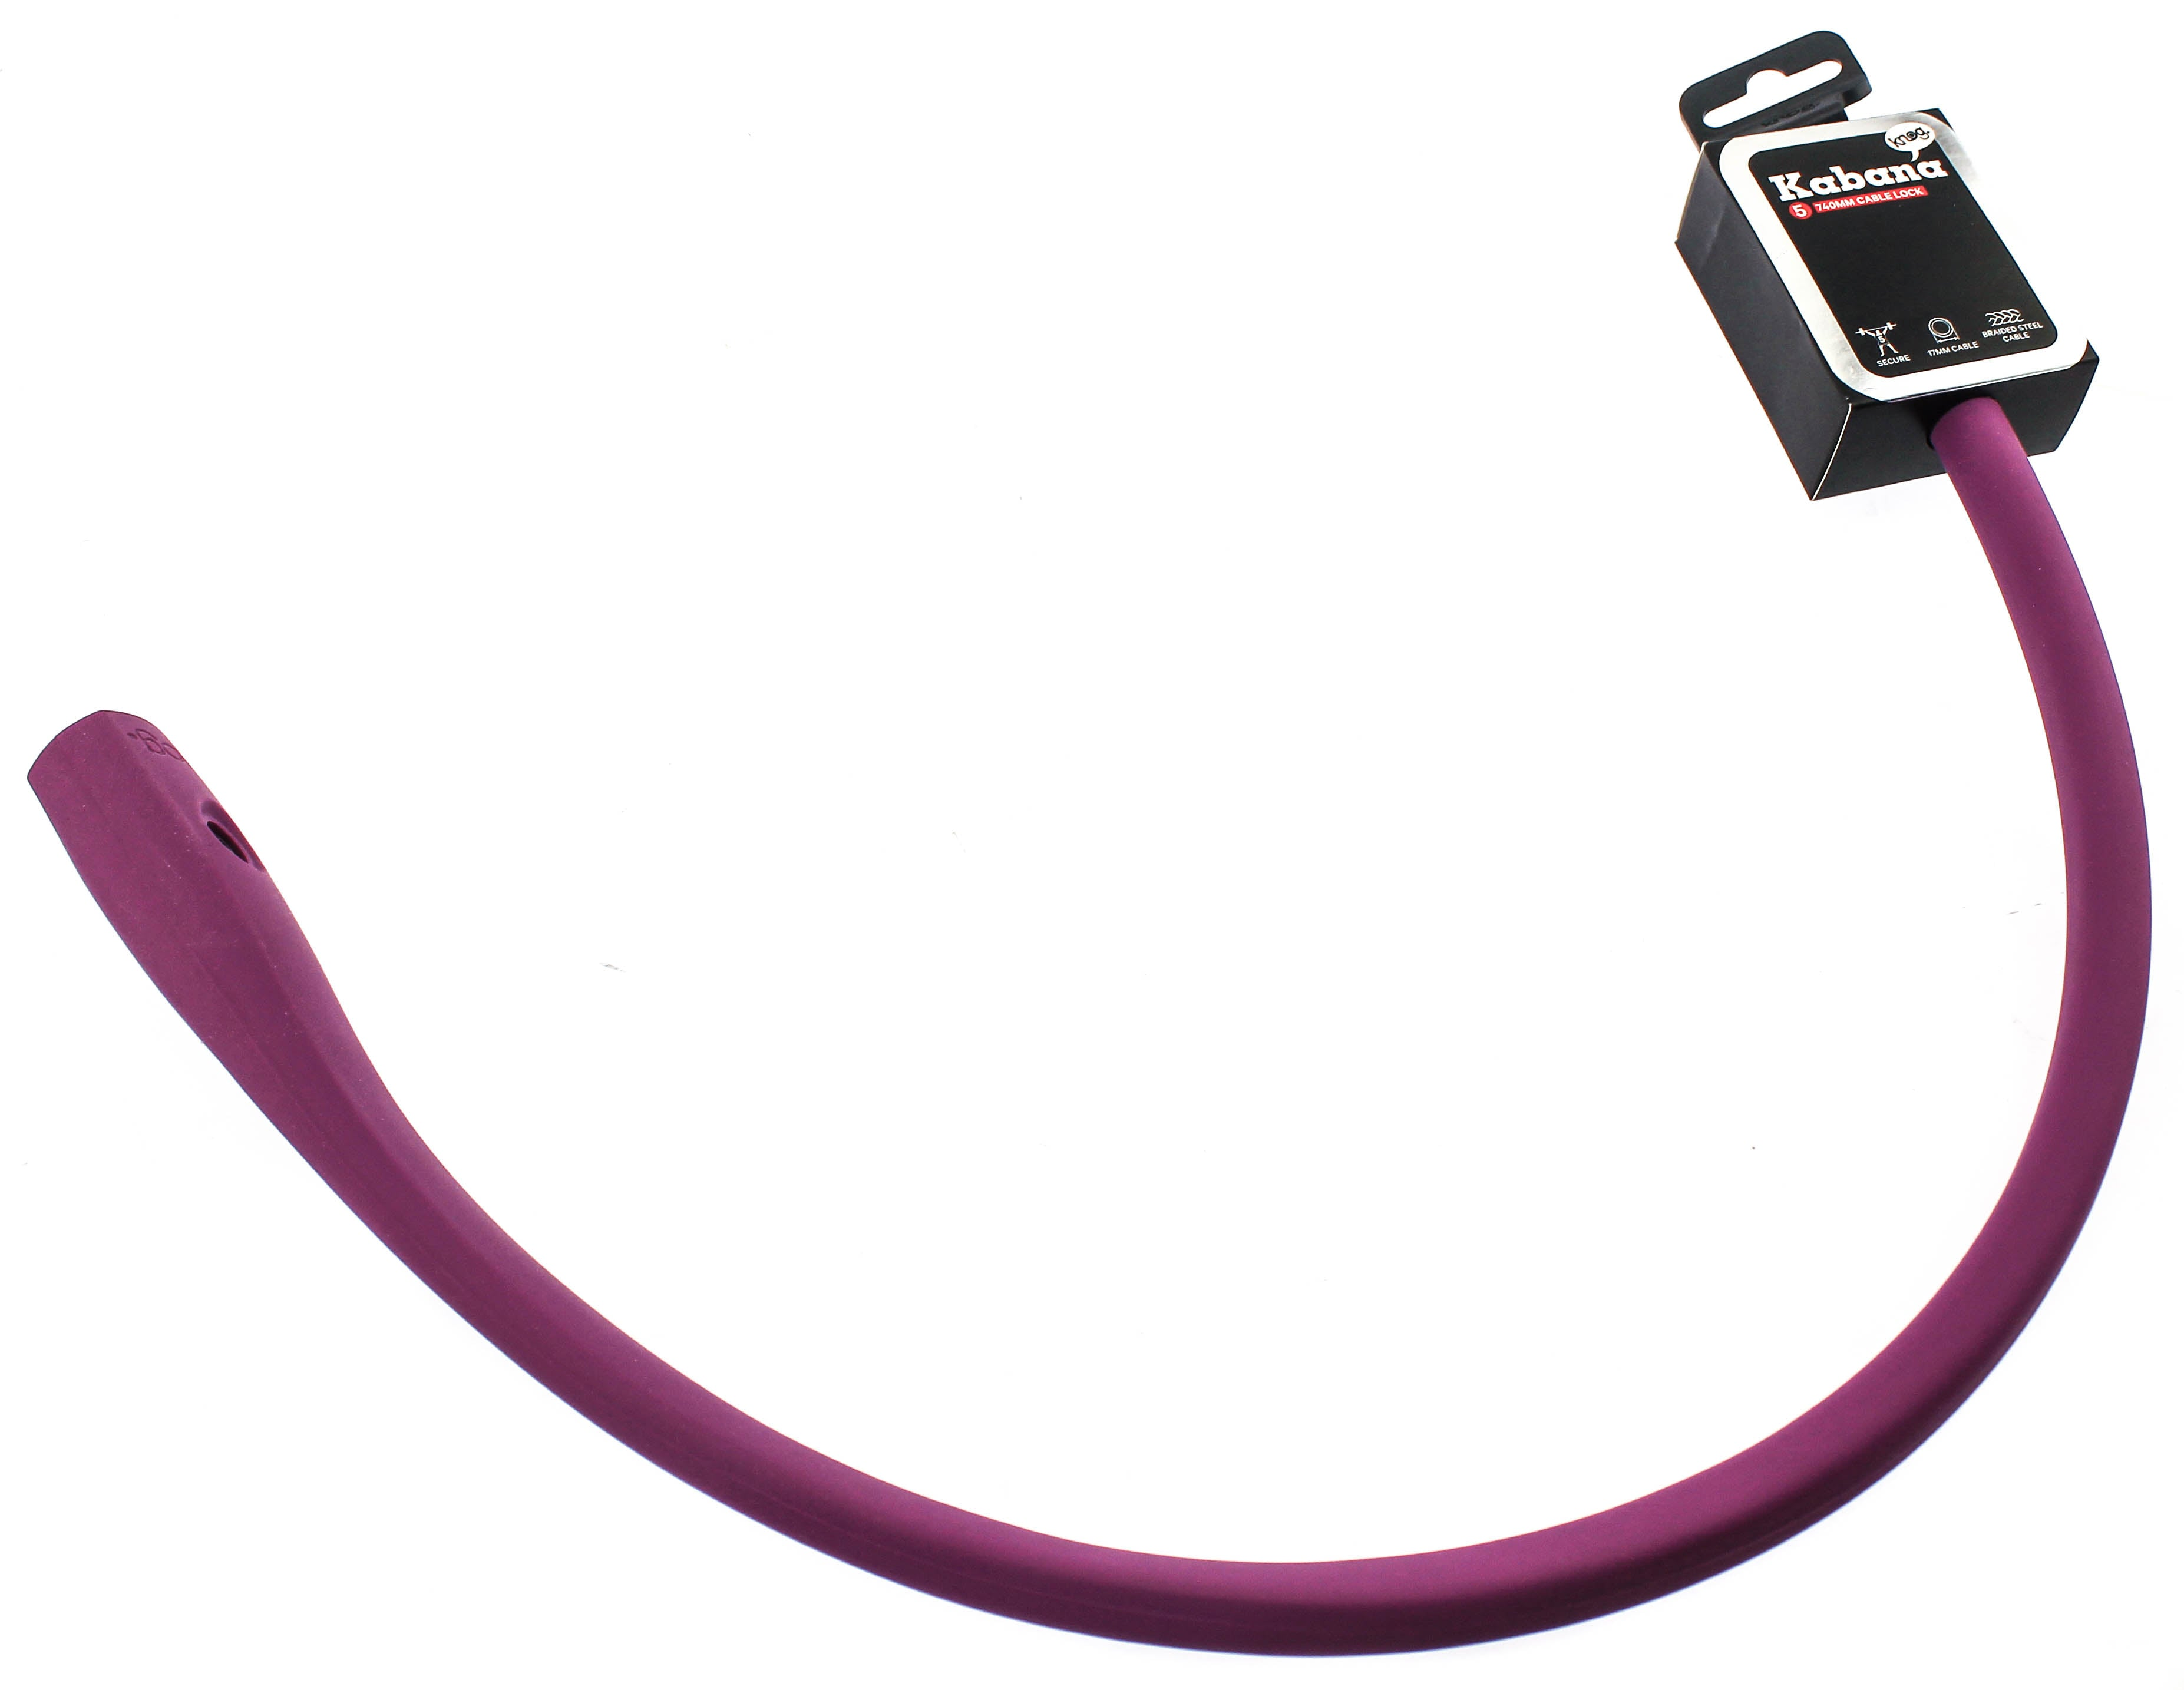 Knog Kabana Cable Bike Lock 740mm Grape Purple Silicone Steel Cable New